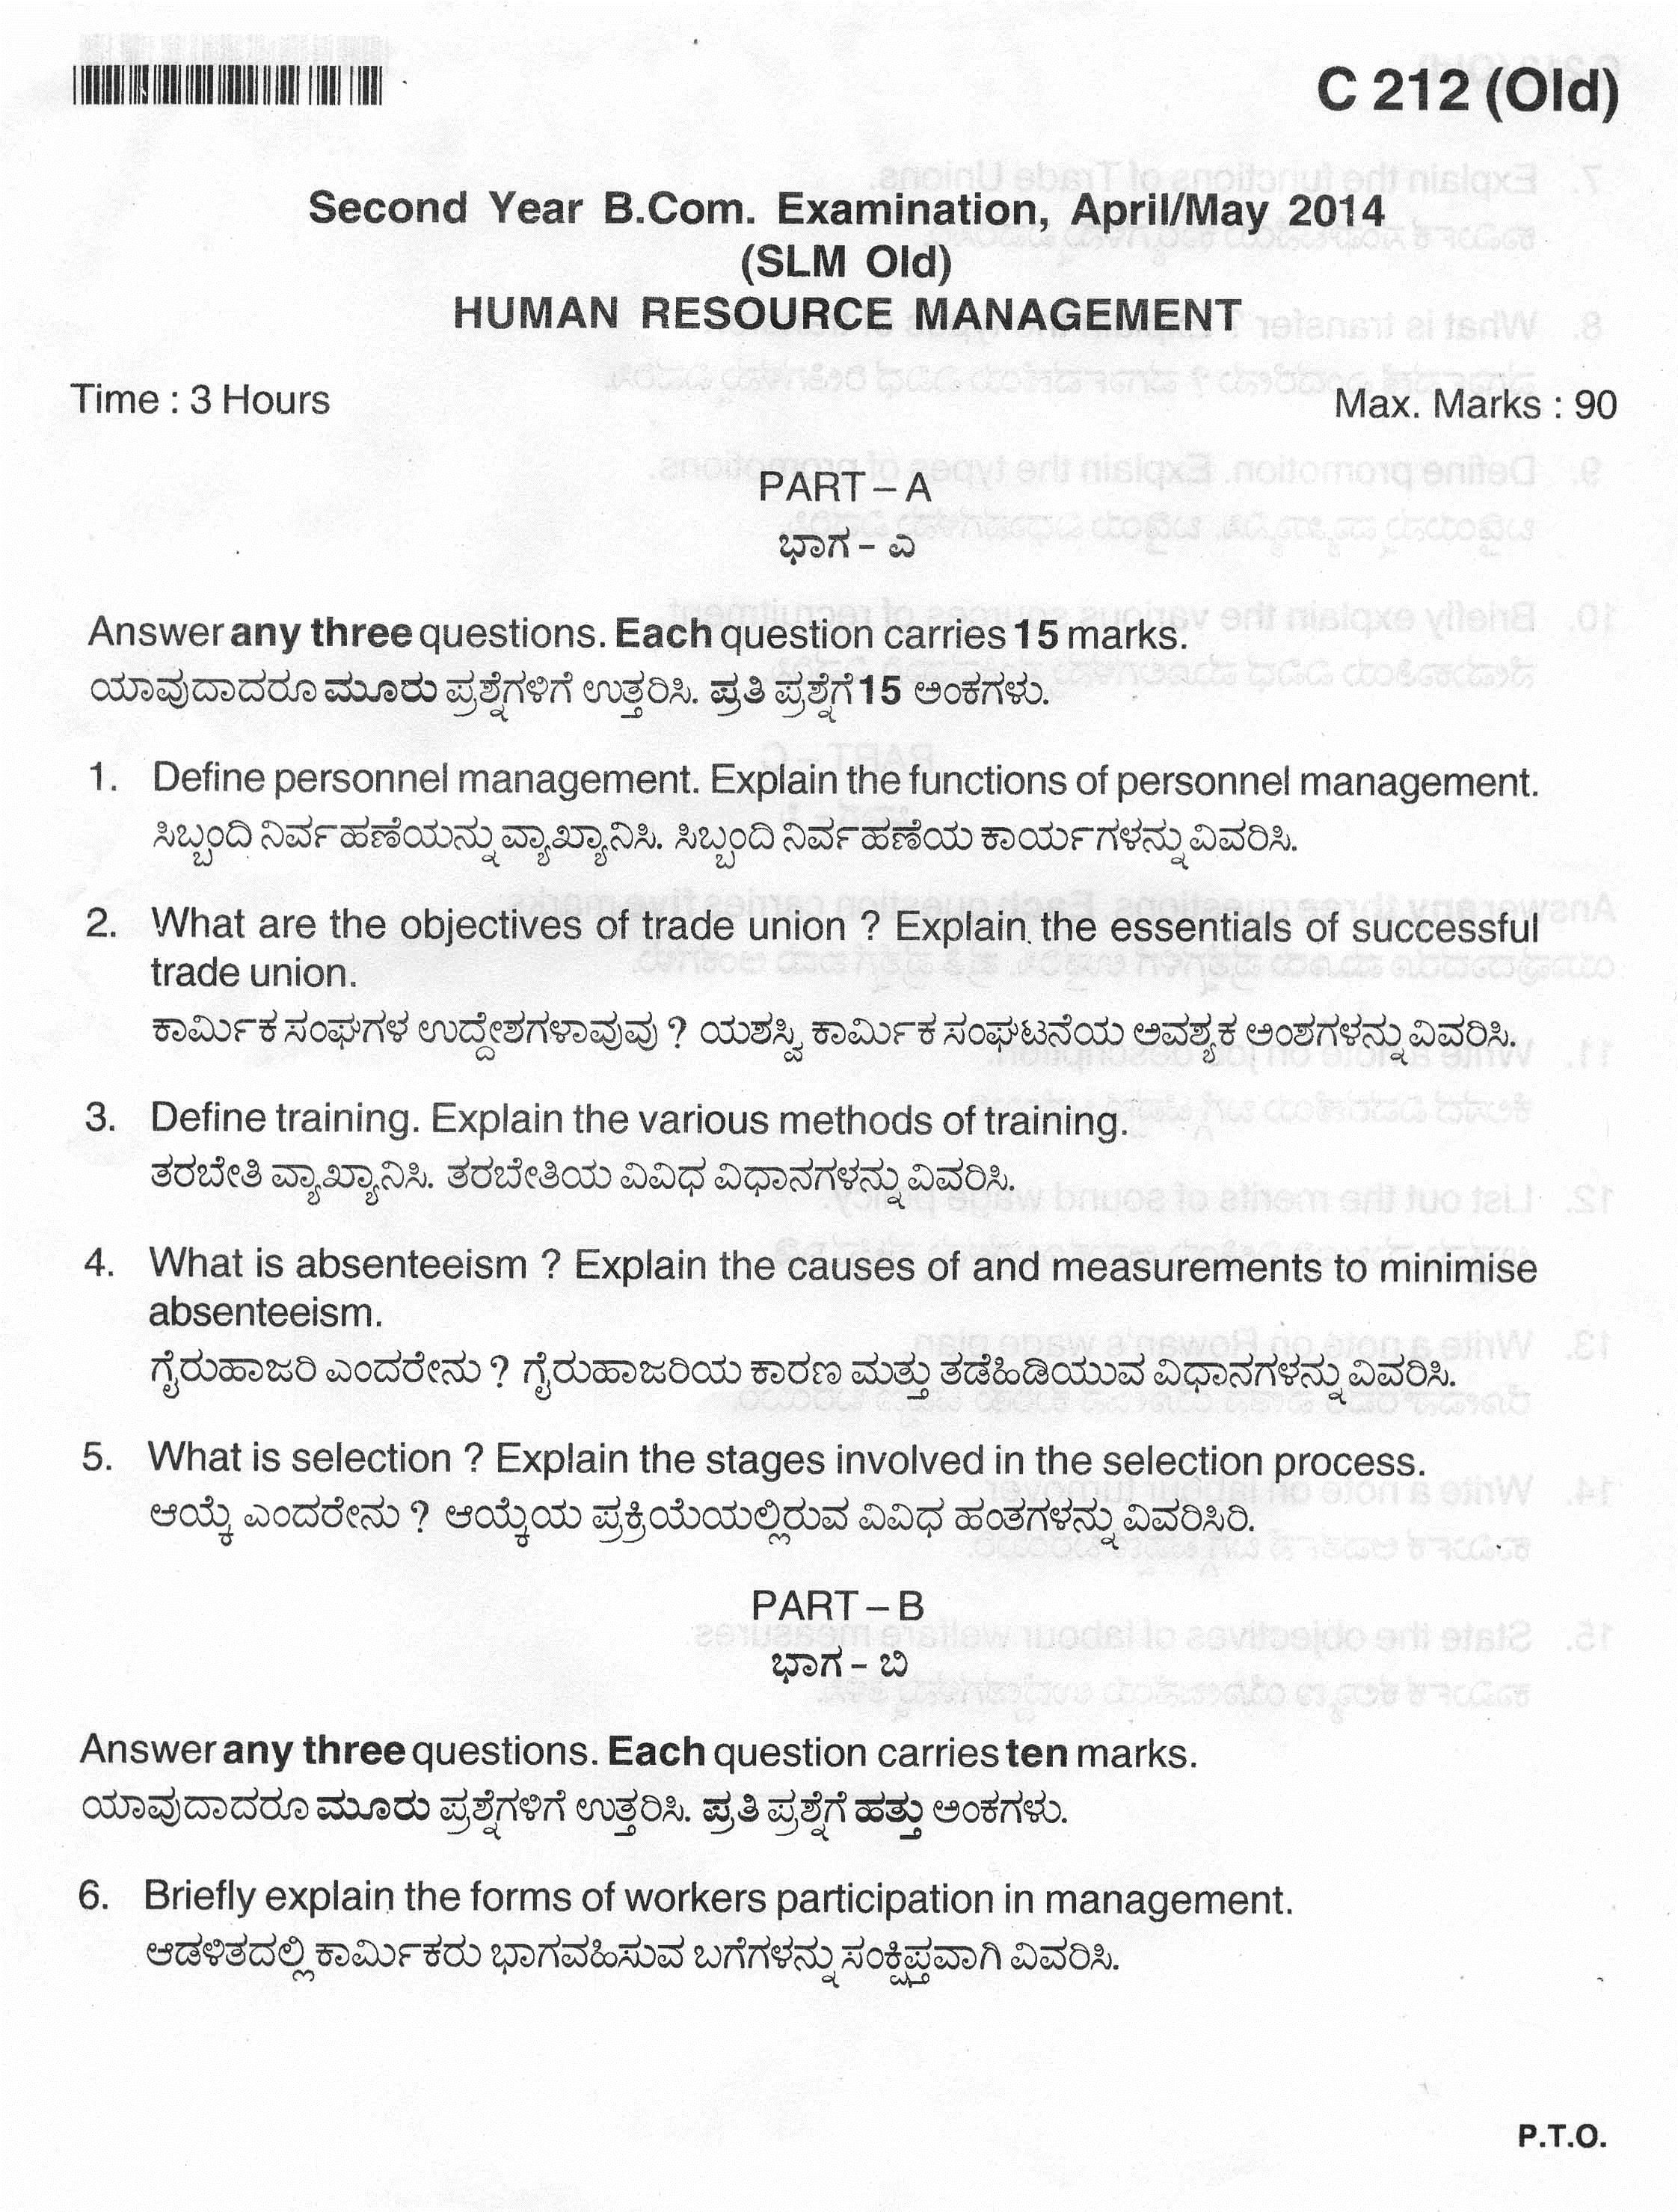 Human Resource Management - 2nd year B Com - 2014 (1 of 2